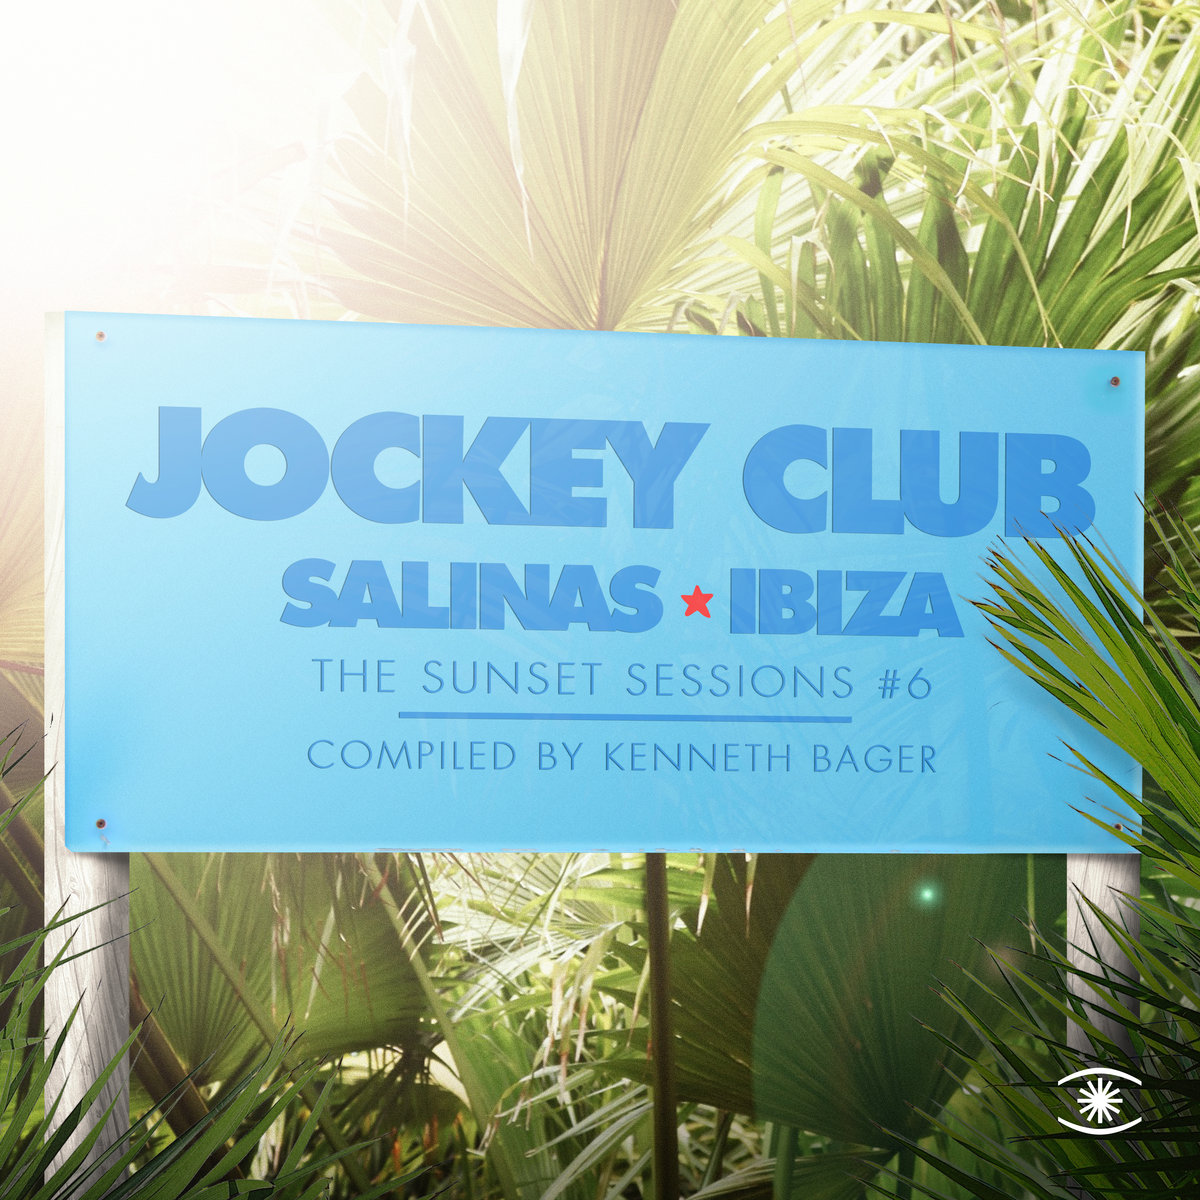 Jockey Club: The Sunset Sessions #6 Compiled By Kenneth